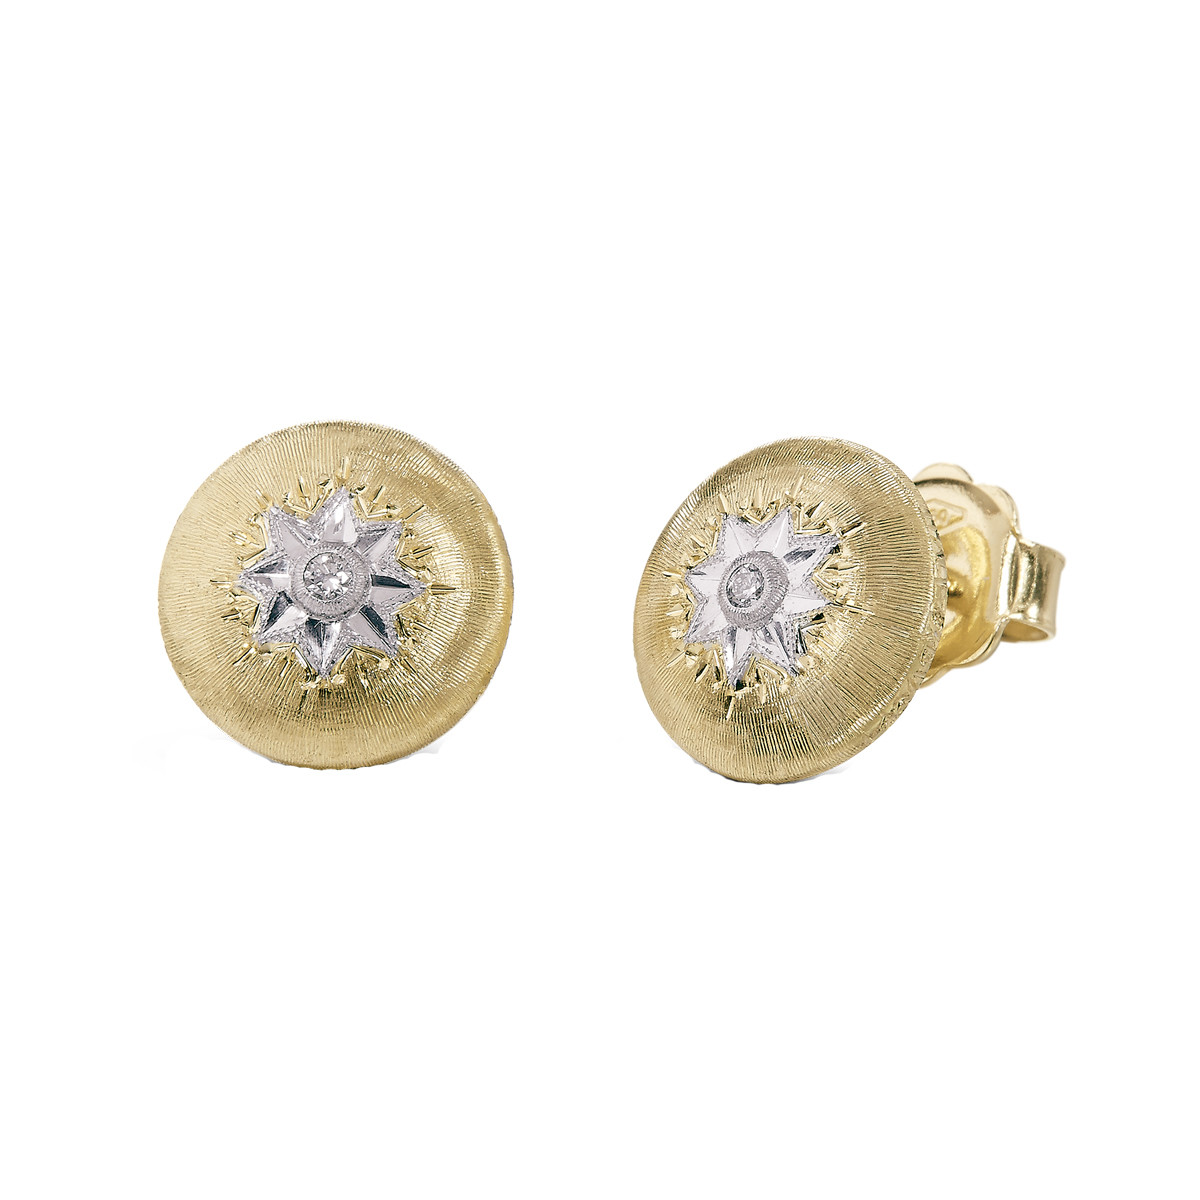 "18k Yellow Gold & Diamond ""Macri"" Stud Earrings"